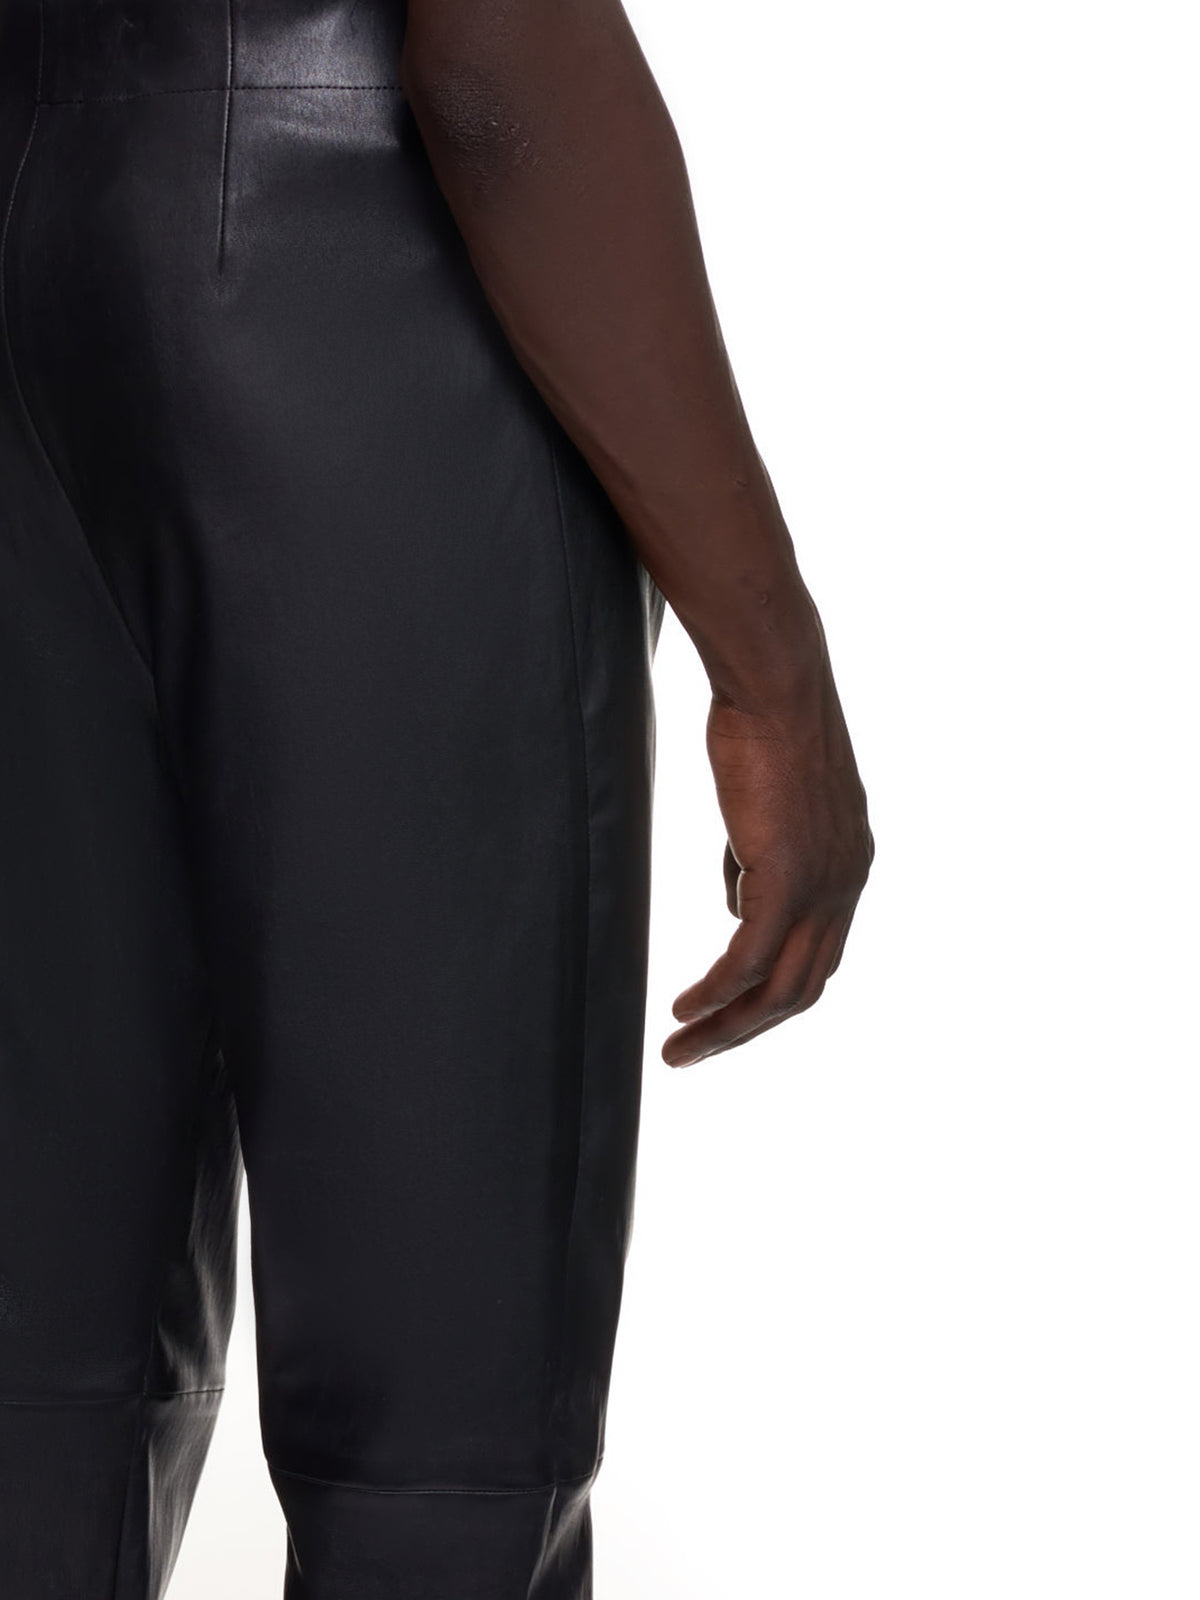 Ludovic De Saint Sernin Leather Pants | H.Lorenzo Detail 2